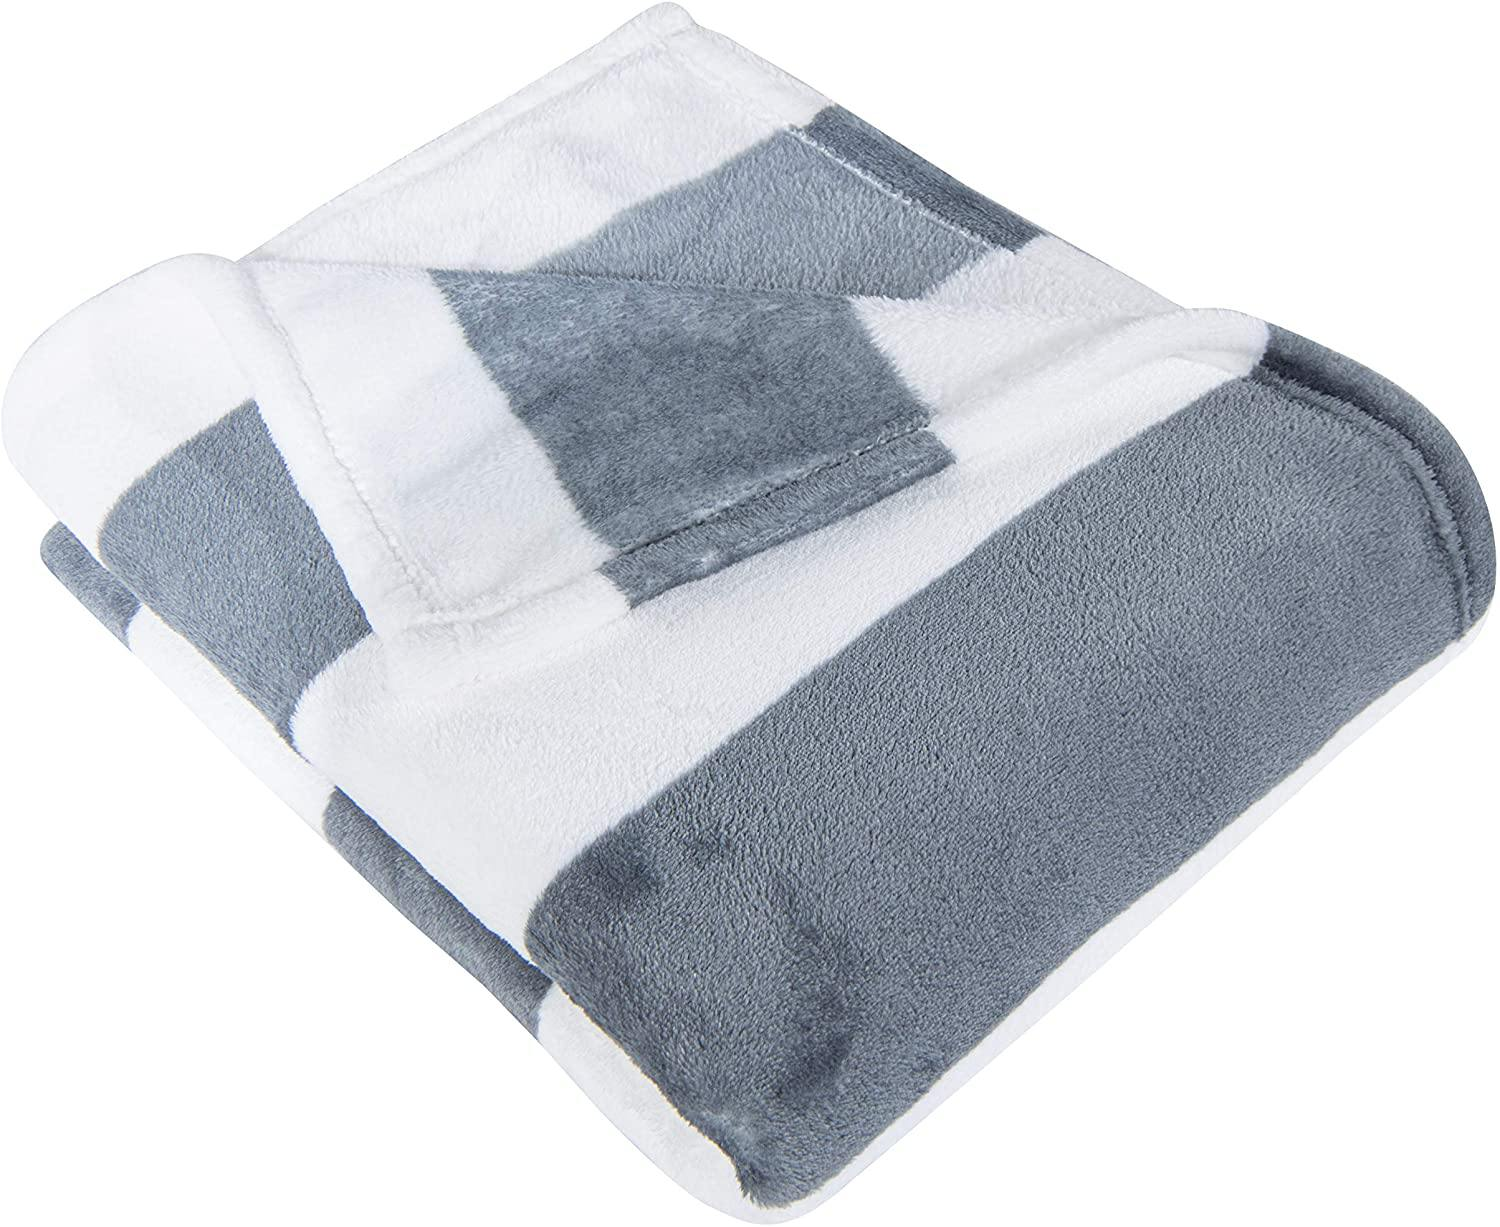 NTBAY Flannel Blanket, Super Soft with Grey and White Striped Printed Bed Blanket